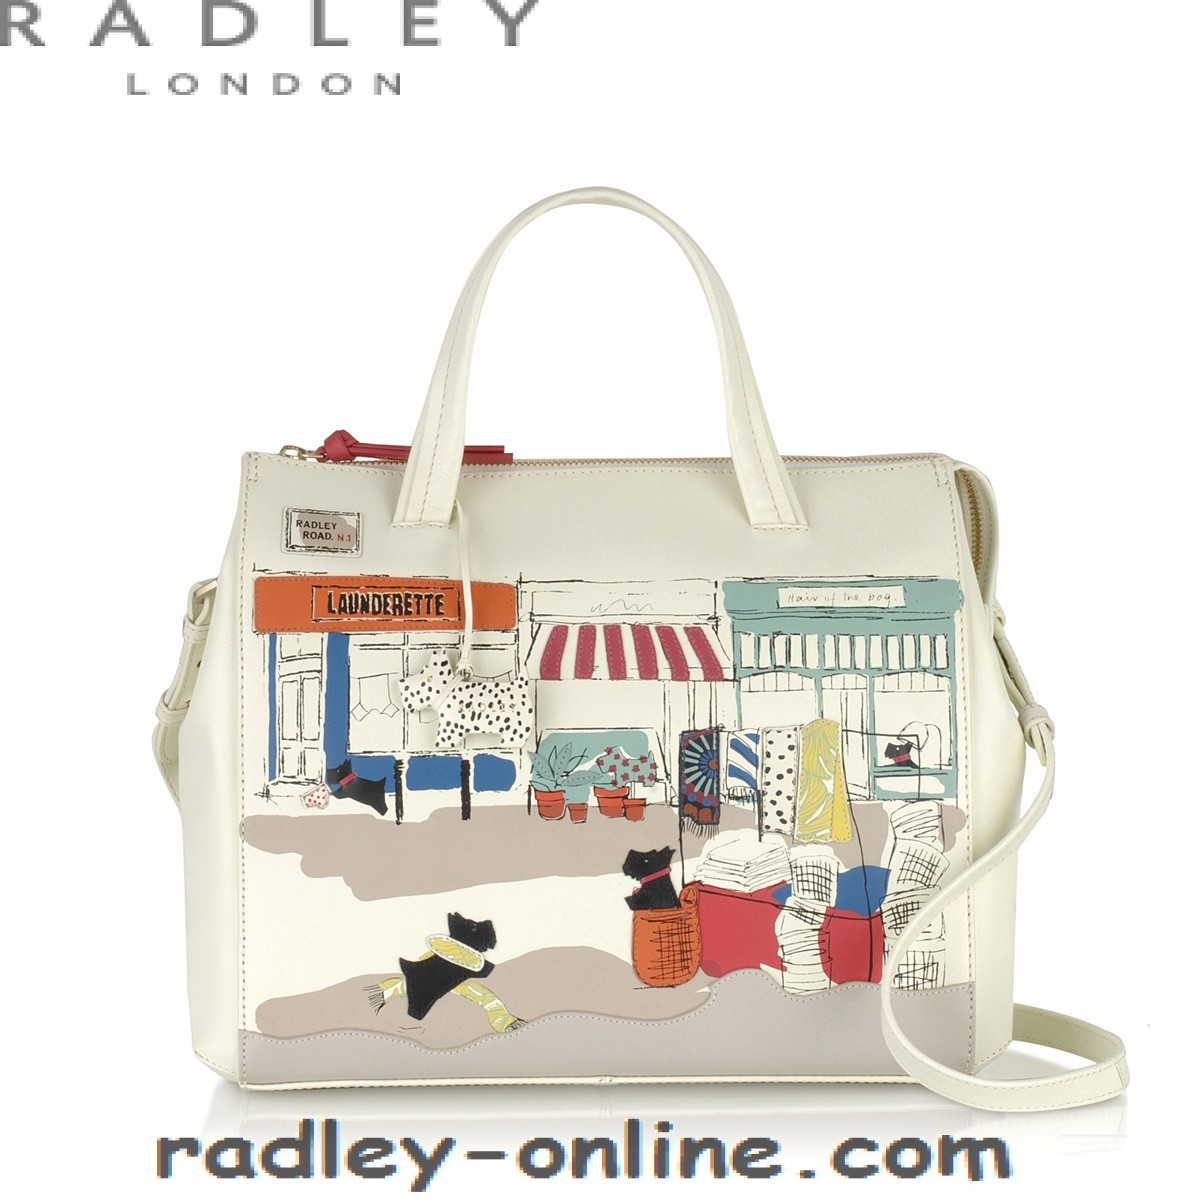 Radley Bag ... 2017 hot sell radley road large ziptop grab bag with high qulity - 2017 DZVYTBA